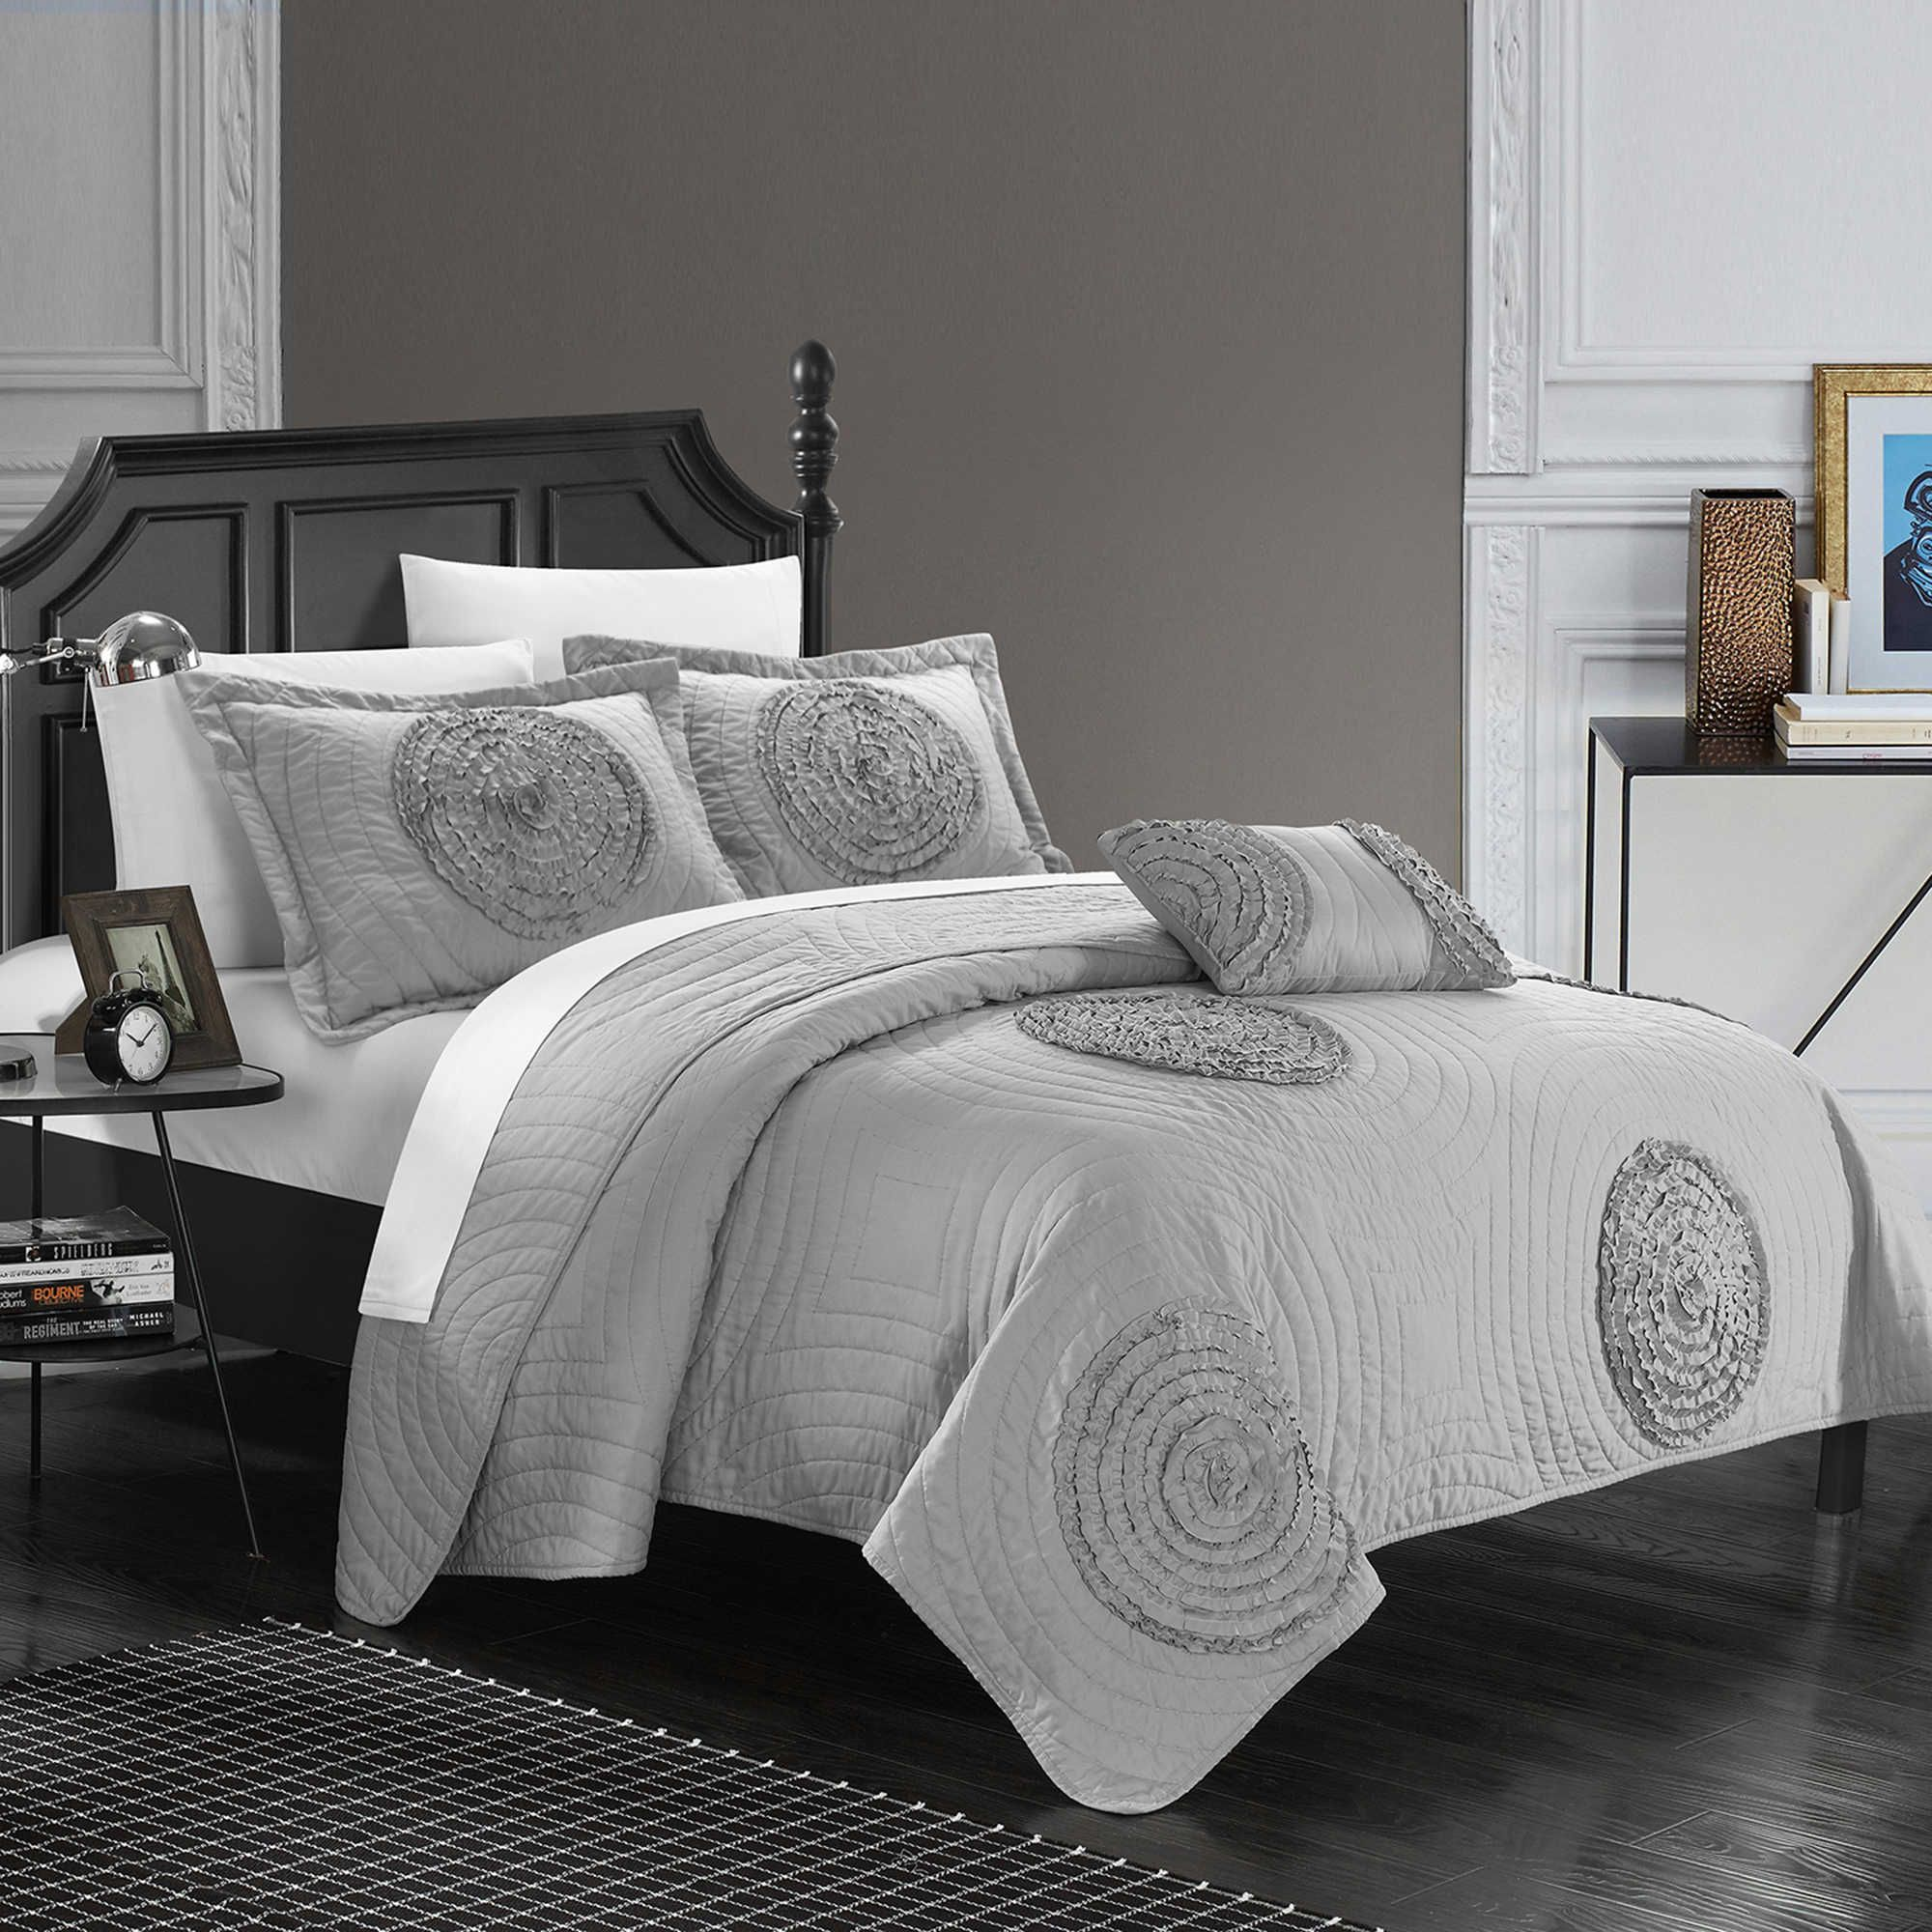 queen furniture and set navy sets blue chocolate quilt bedding beige white grey comforter brown king green